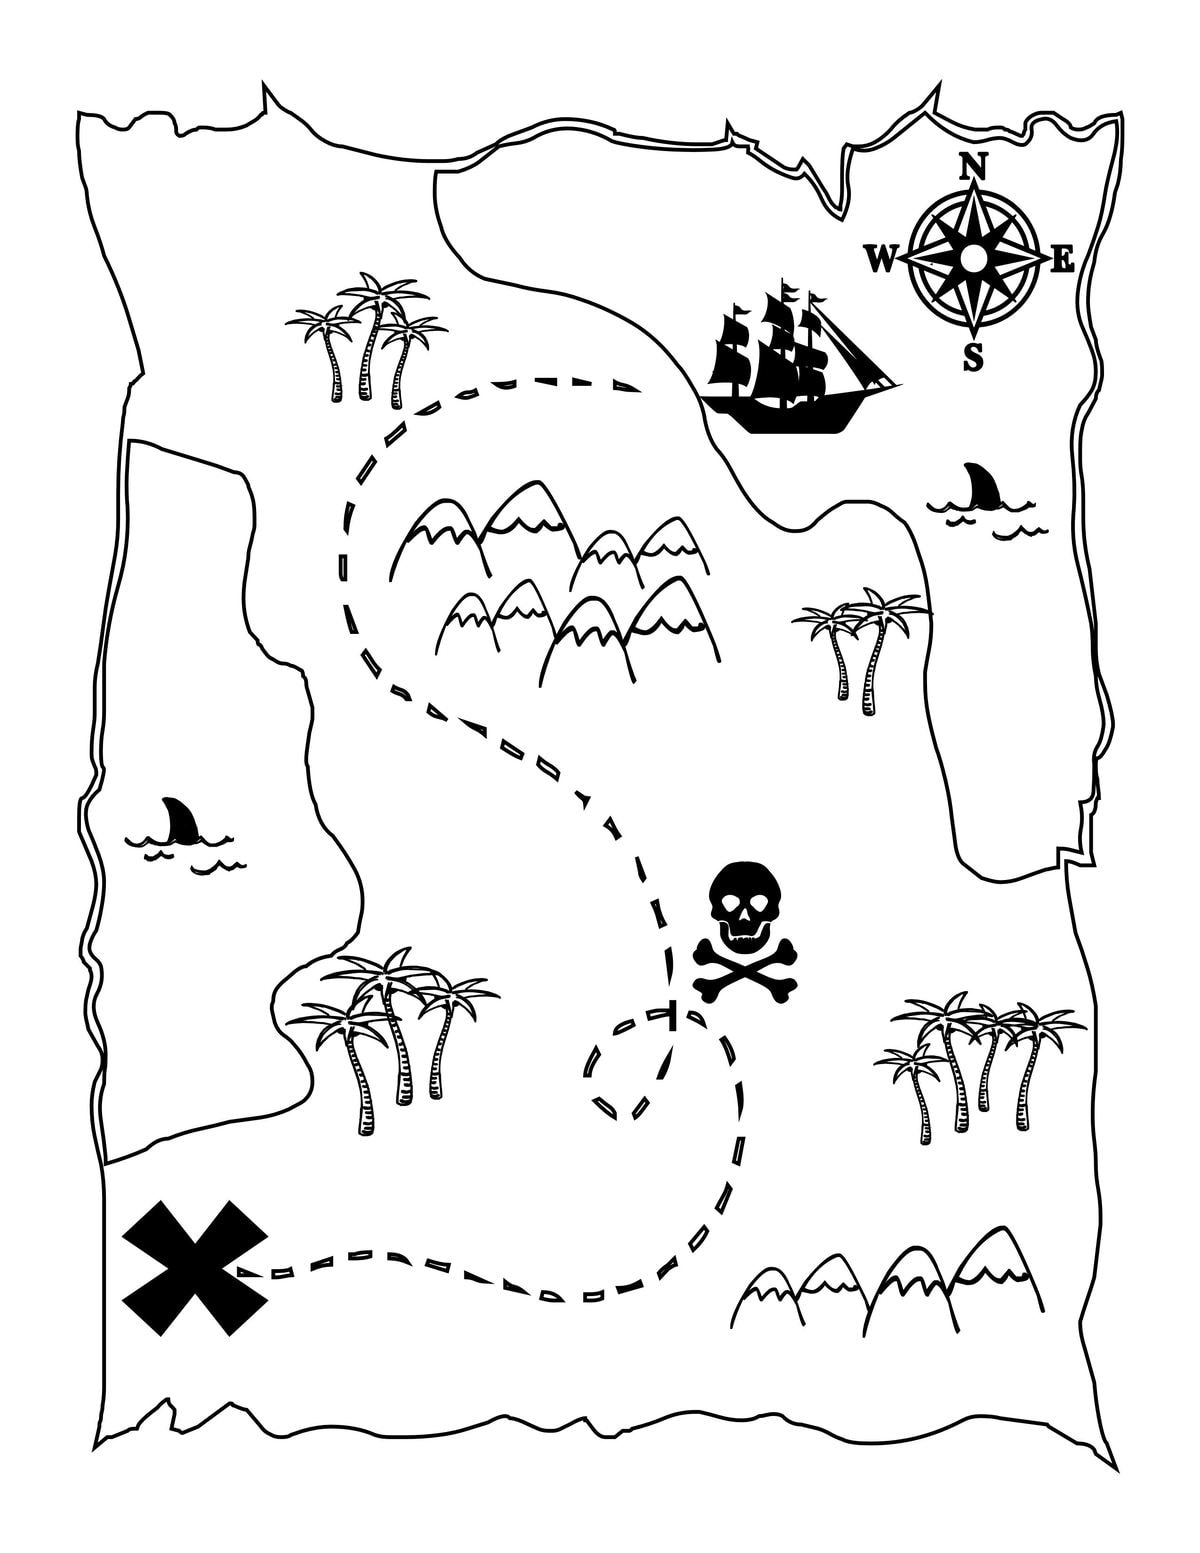 treasure map coloring page treasure map coloring pages getcoloringpagescom coloring map treasure page